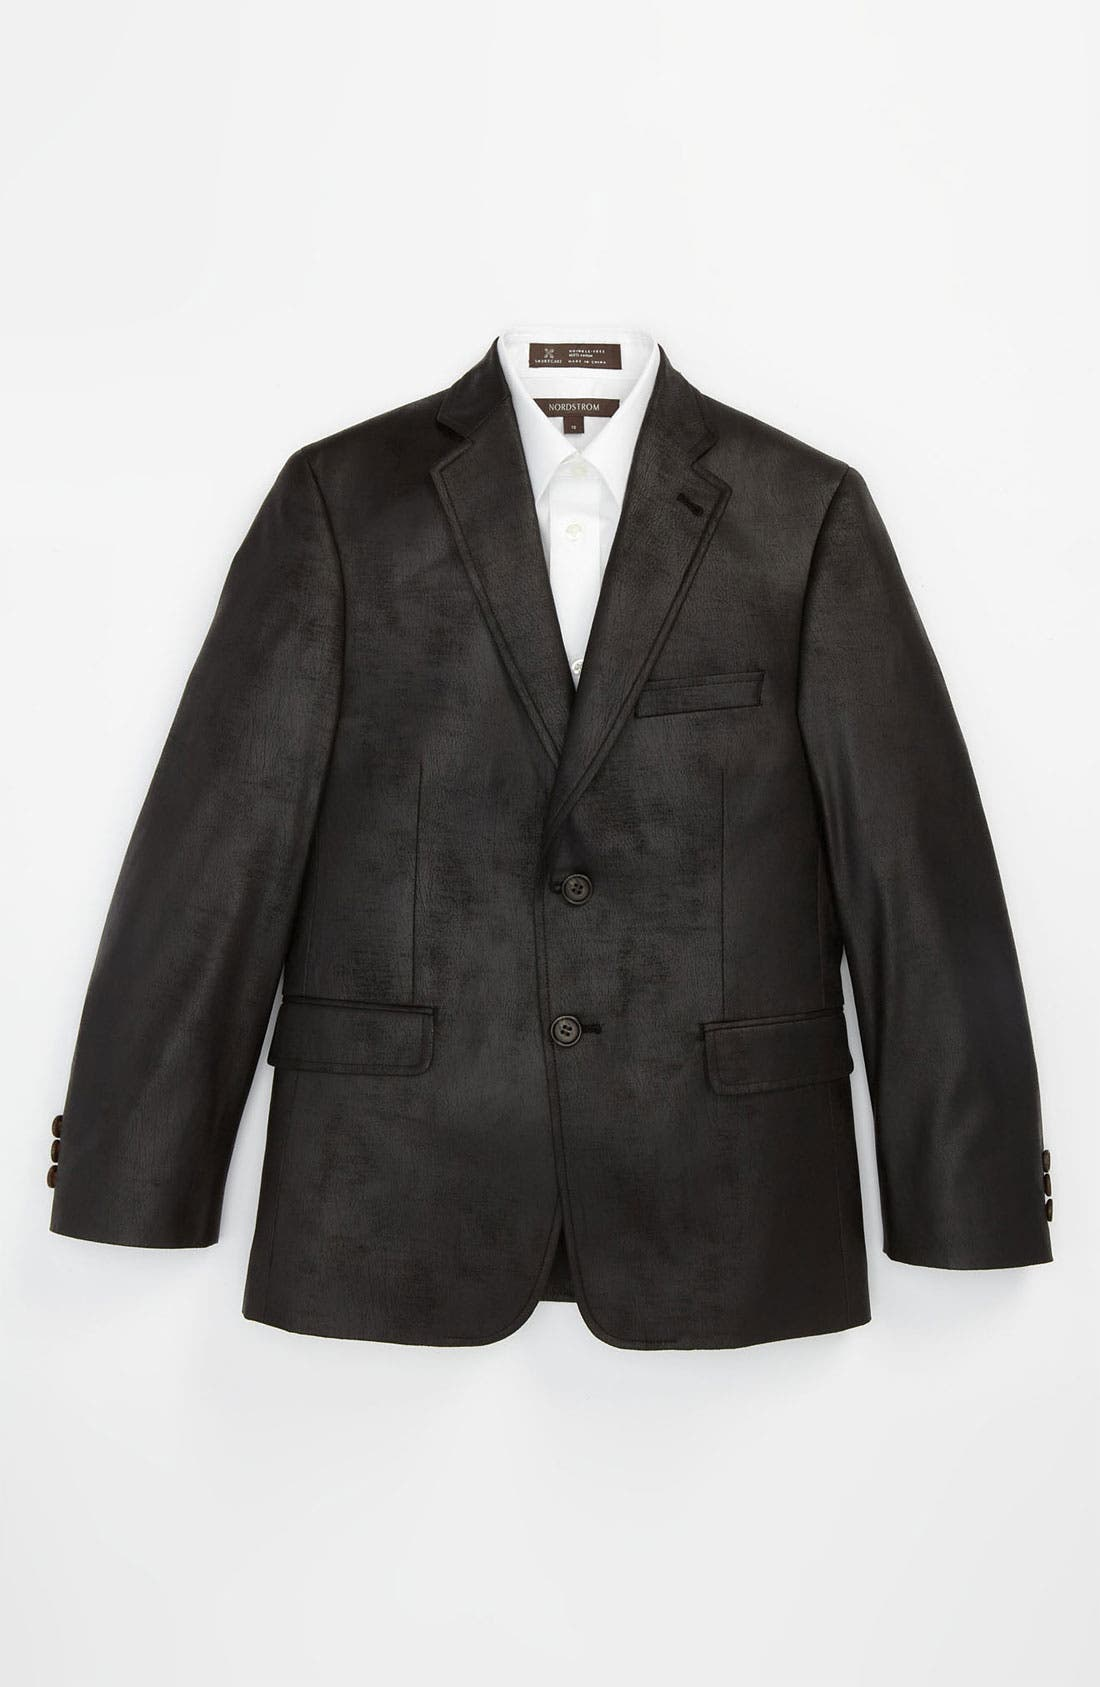 Alternate Image 1 Selected - Joseph Abboud Faux Leather Blazer (Big Boys)